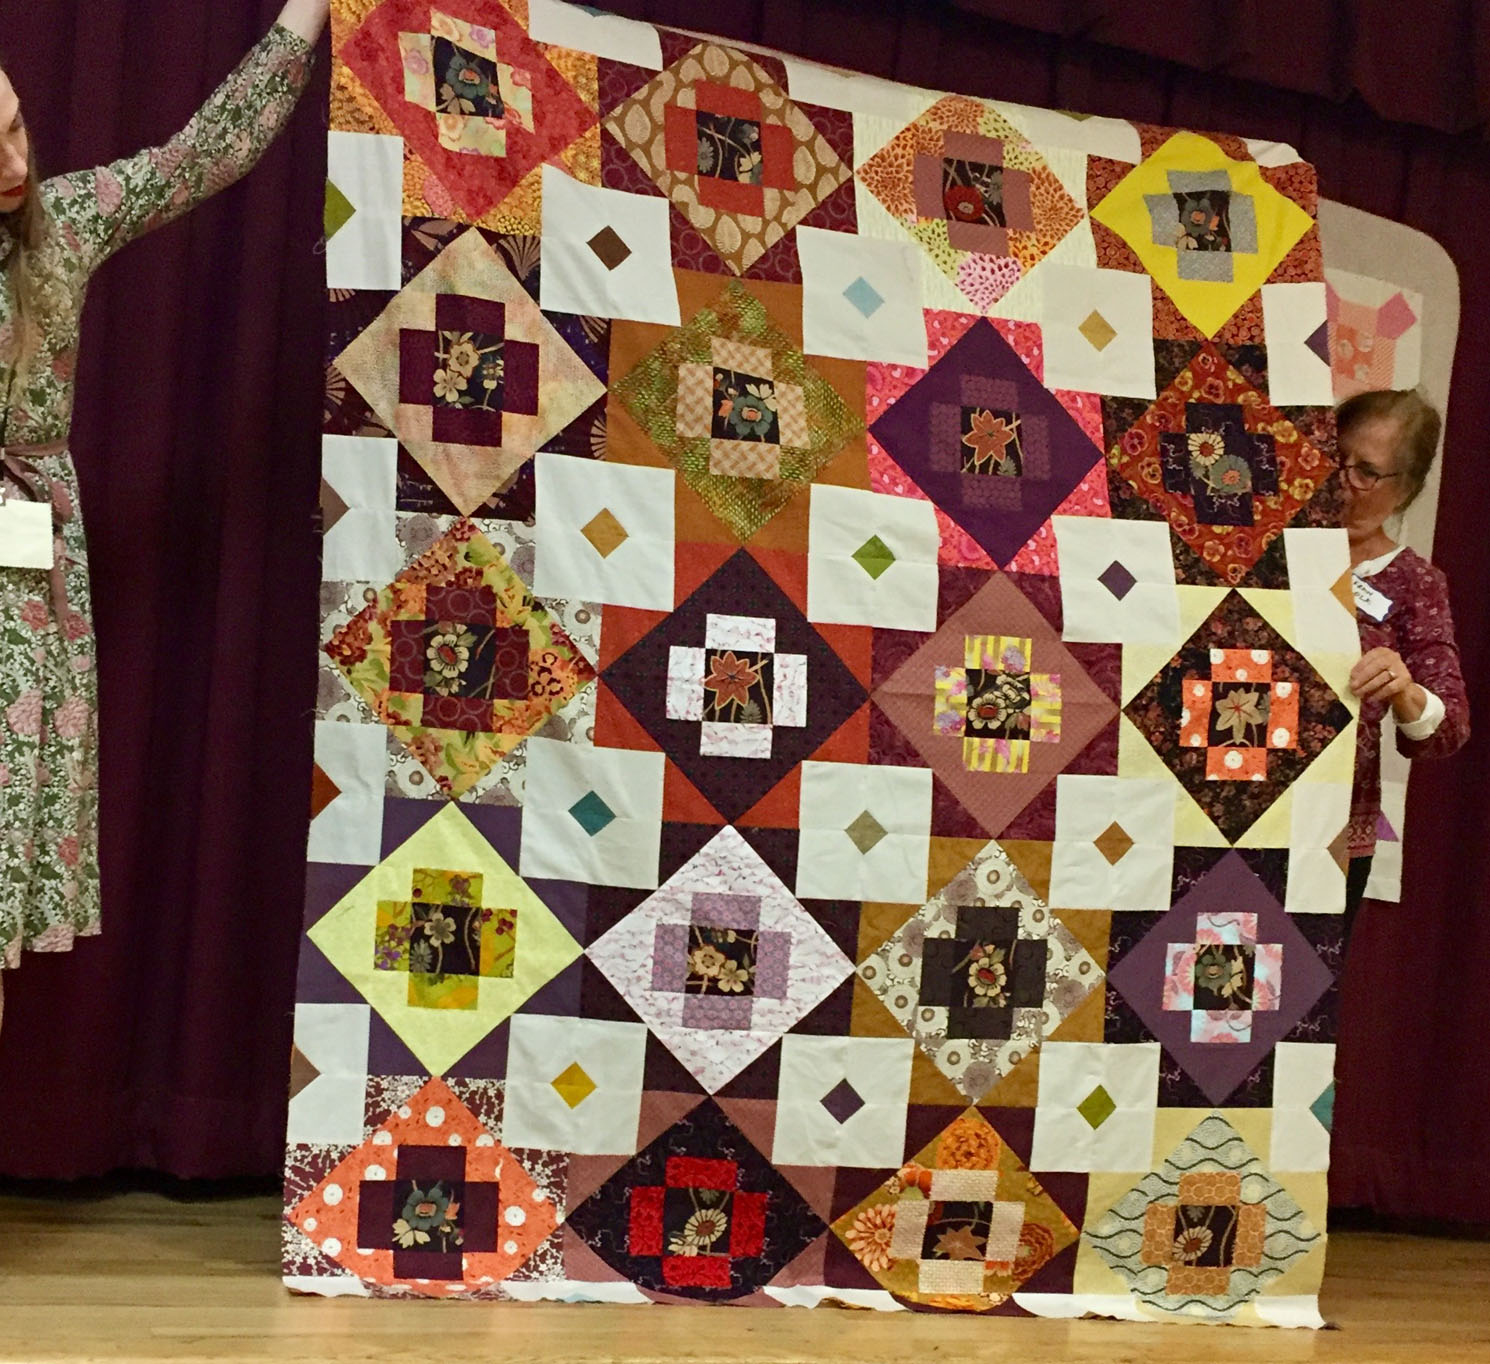 Meadowland quilt by Margaret Marcy Emerson